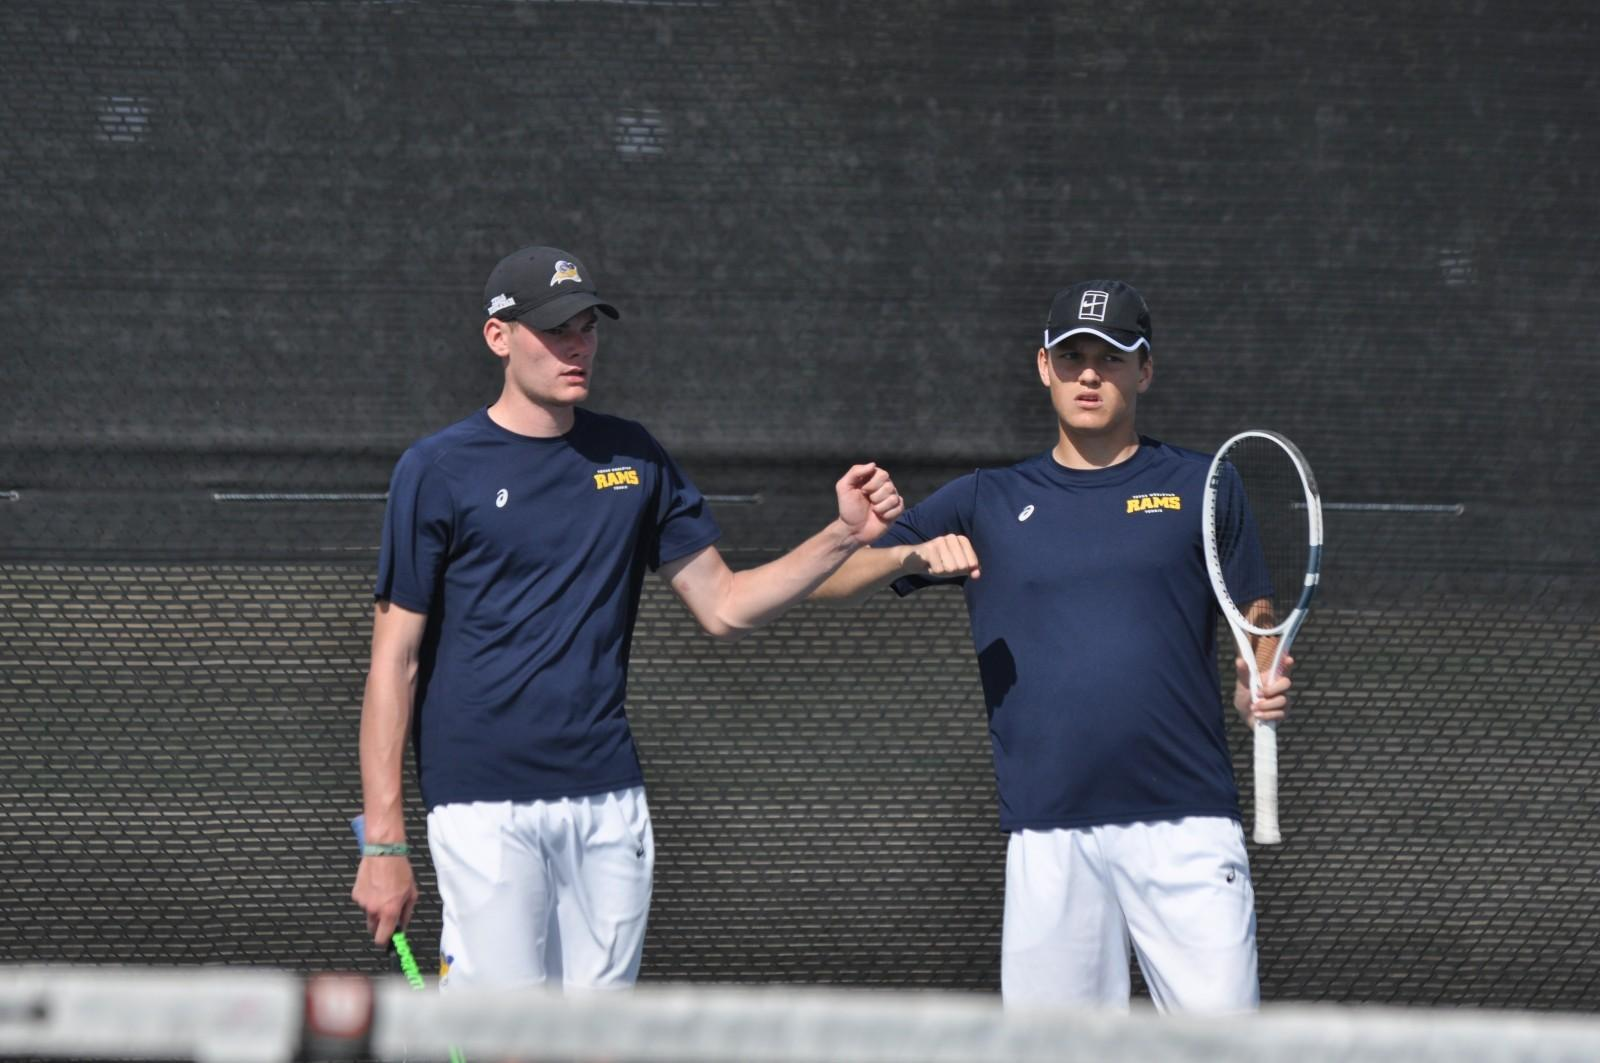 Men's tennis team shows potential